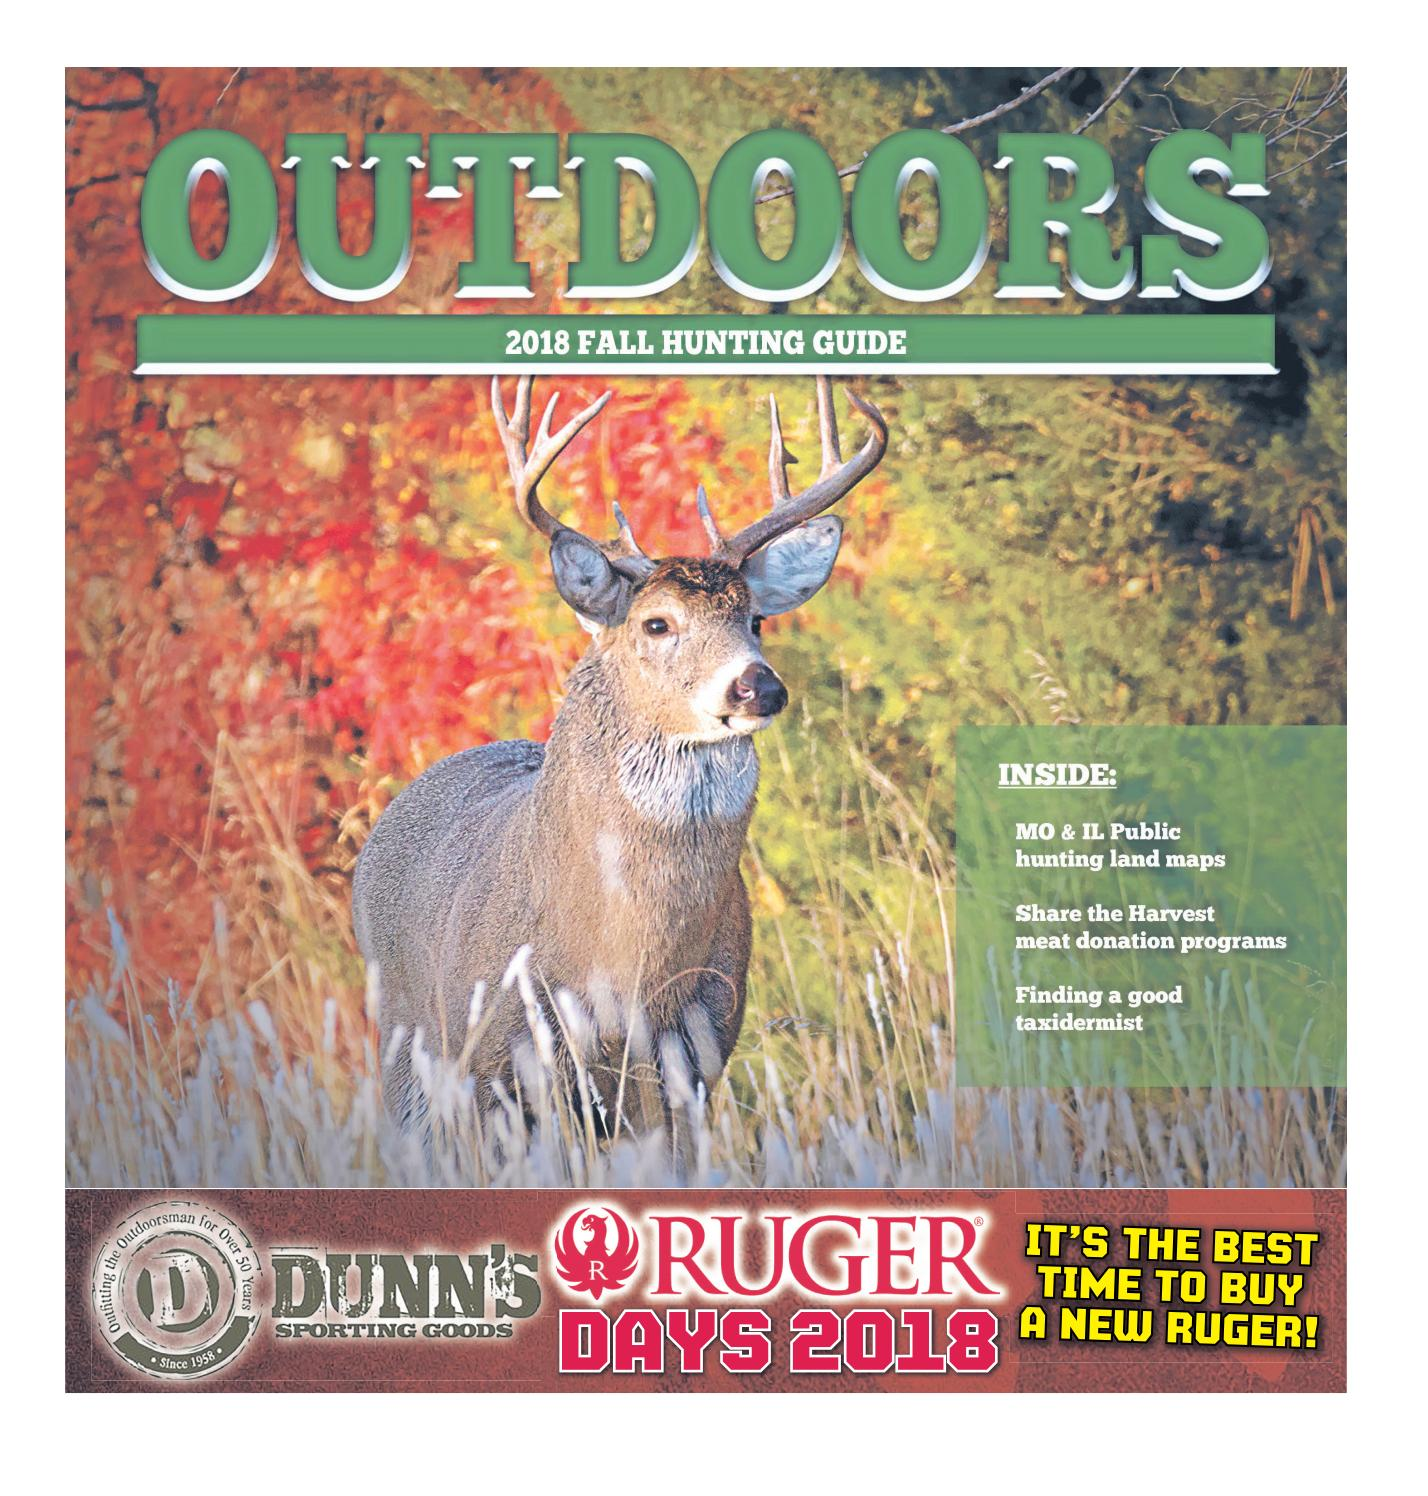 f94cfee044db3 2018 Outdoors Guide by Daily Journal Online - issuu